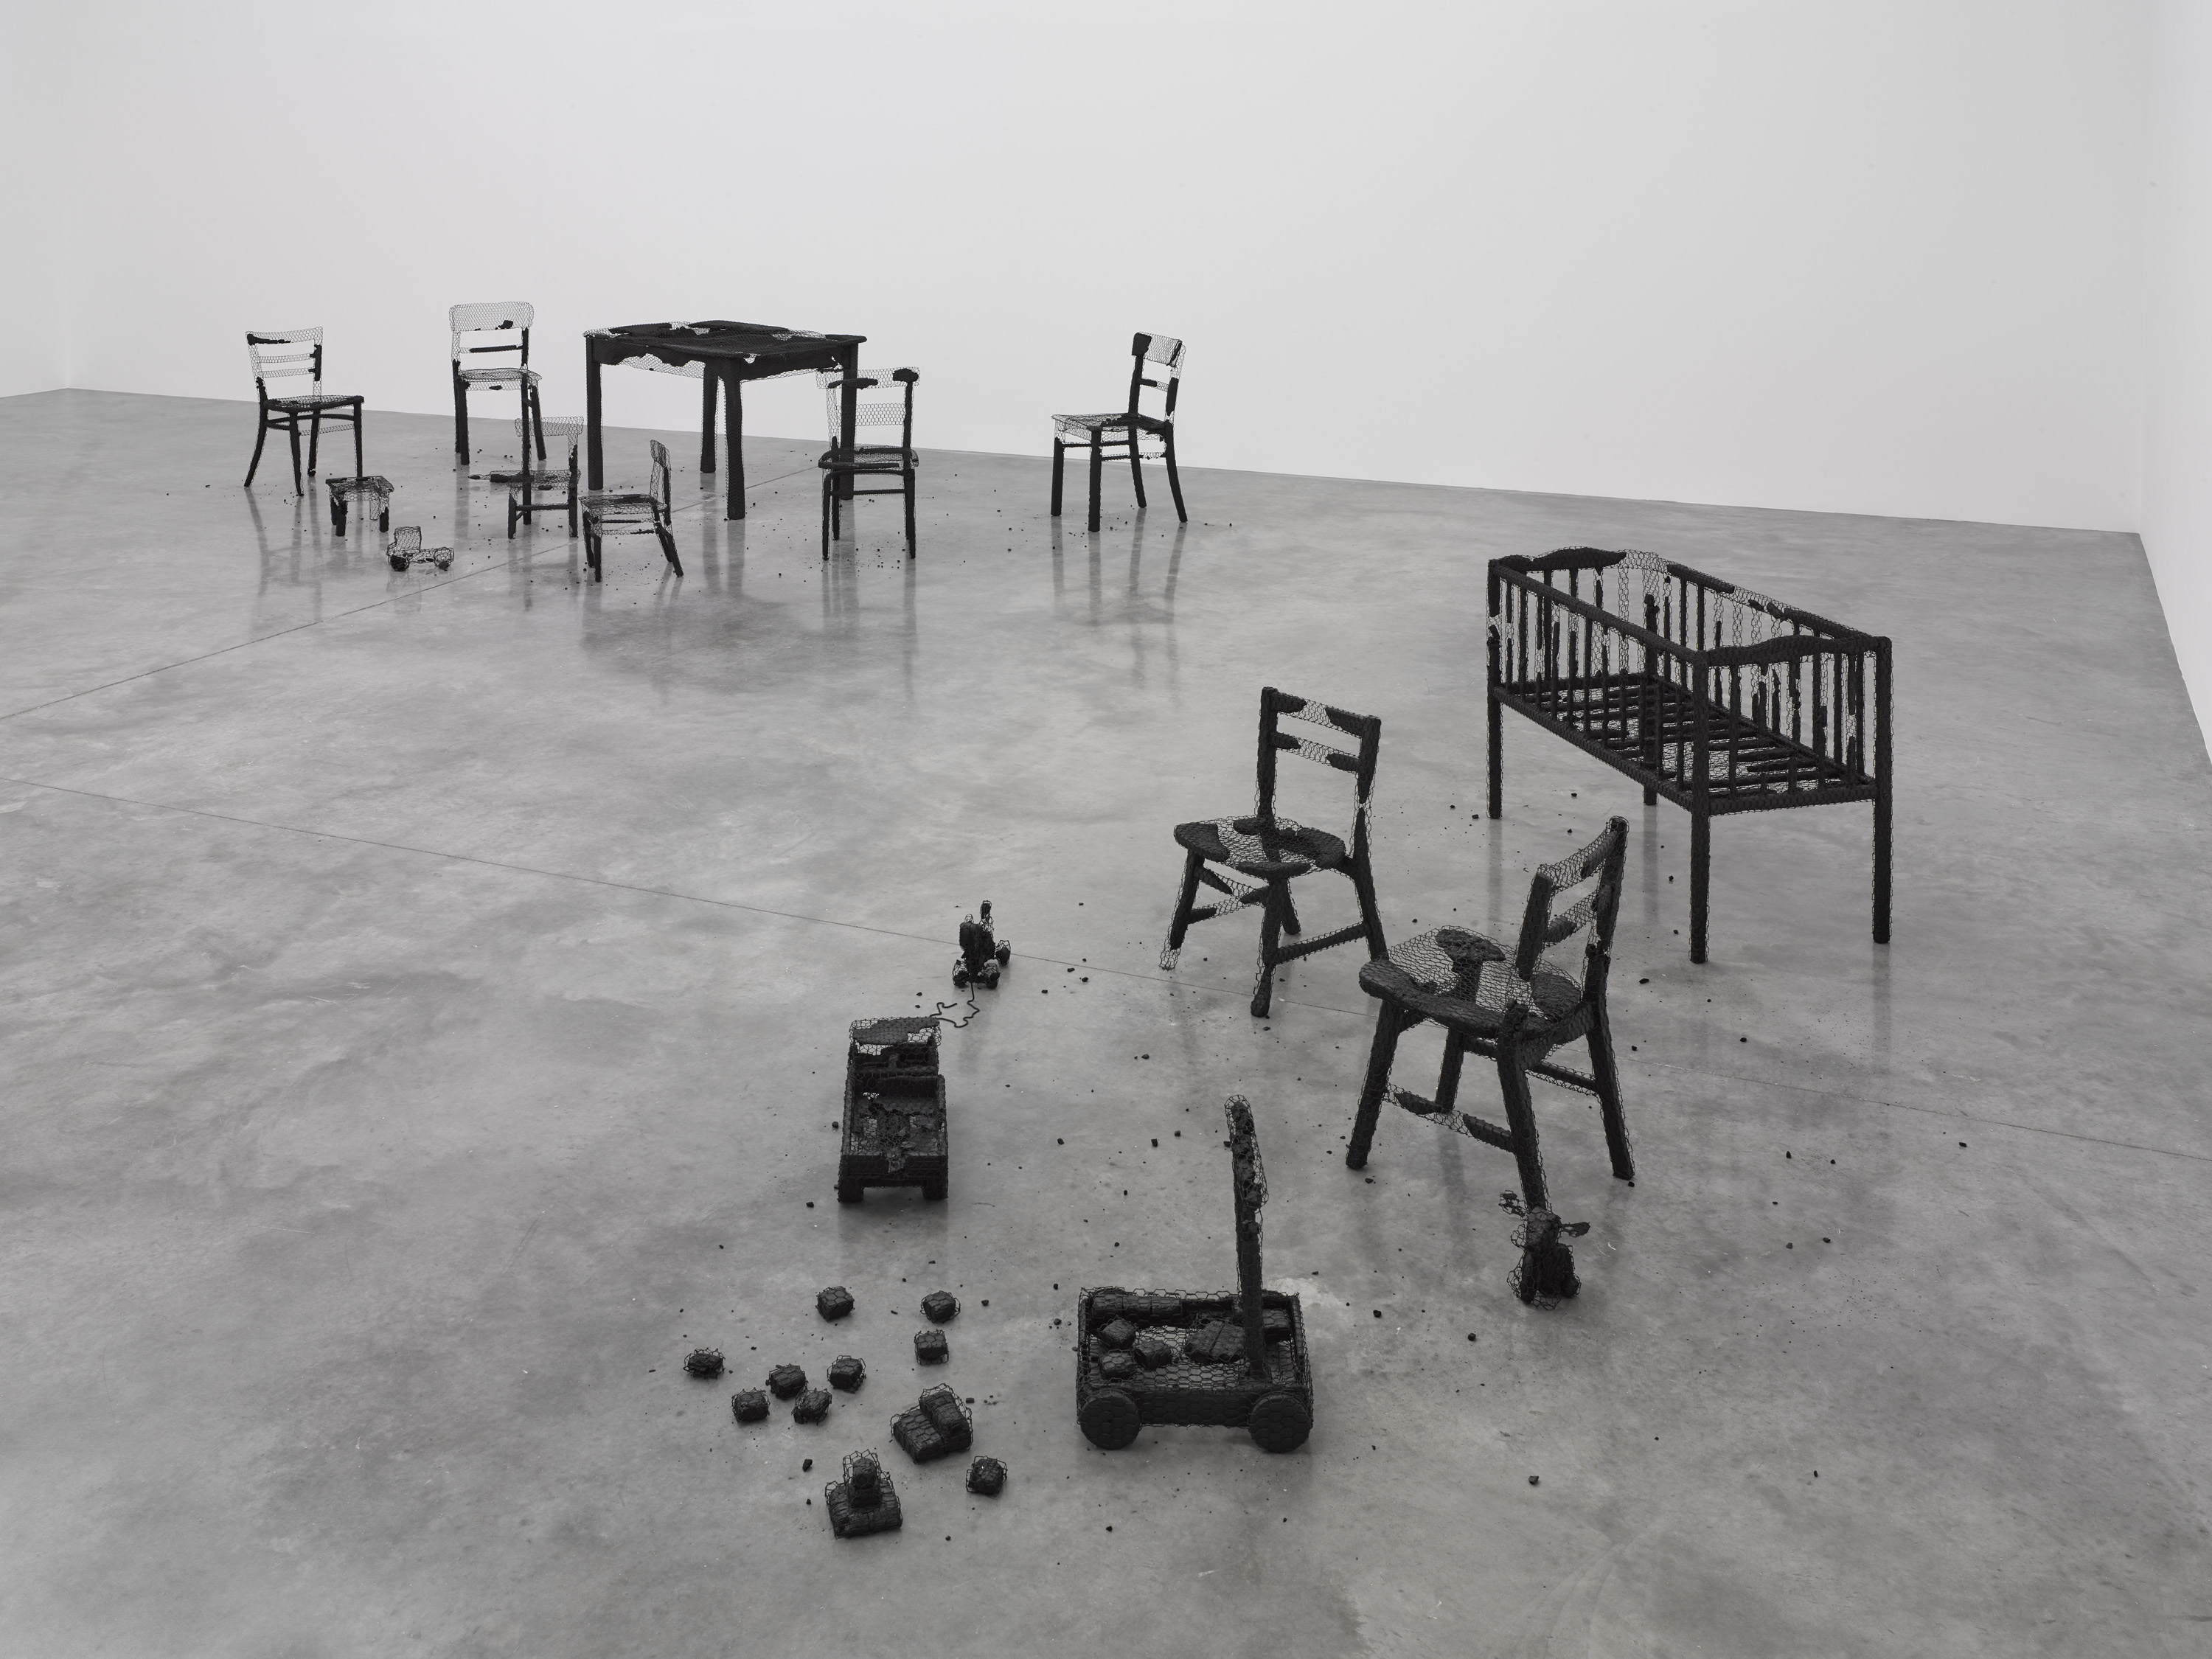 Mona Hatoum, Remains to be Seen, at White Cube Bermondsey, 12 September - 3 November 2019 Photo by Ollie Hammick © Mona Hatoum and White Cube